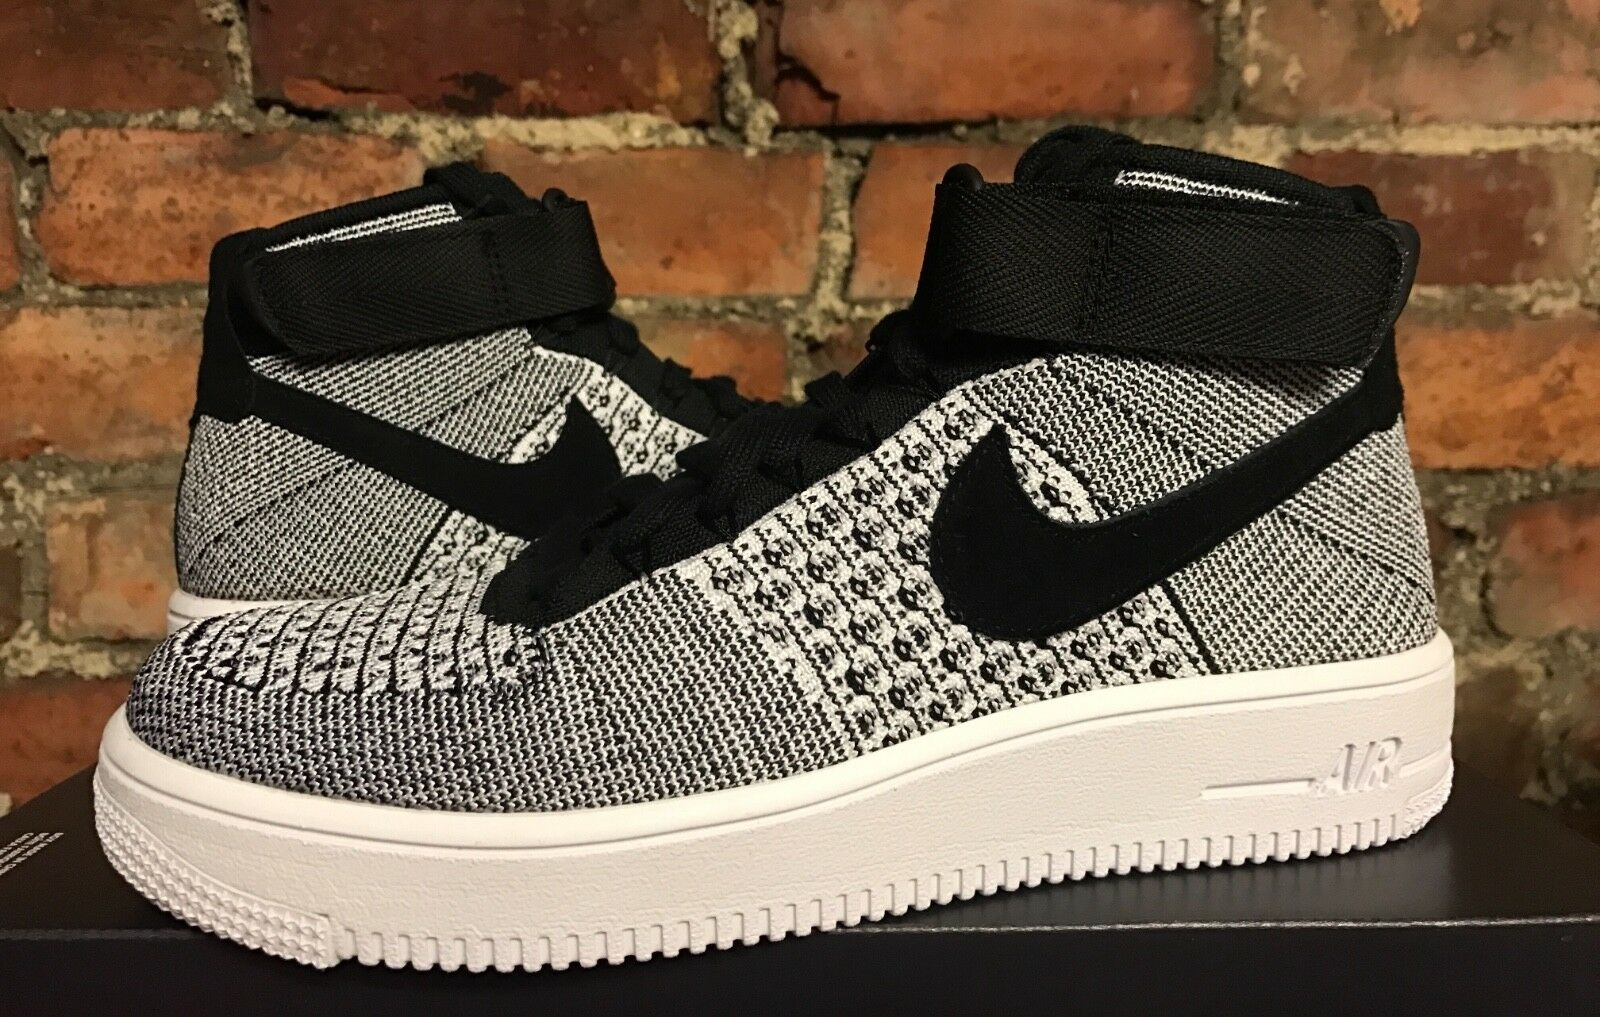 NIKE AIR FORCE FLYKNIT 1 ULTRA FLYKNIT FORCE MID UK6.5 US7.5 EUR40.5 BLACK WHITE 817420 005 4d88cf